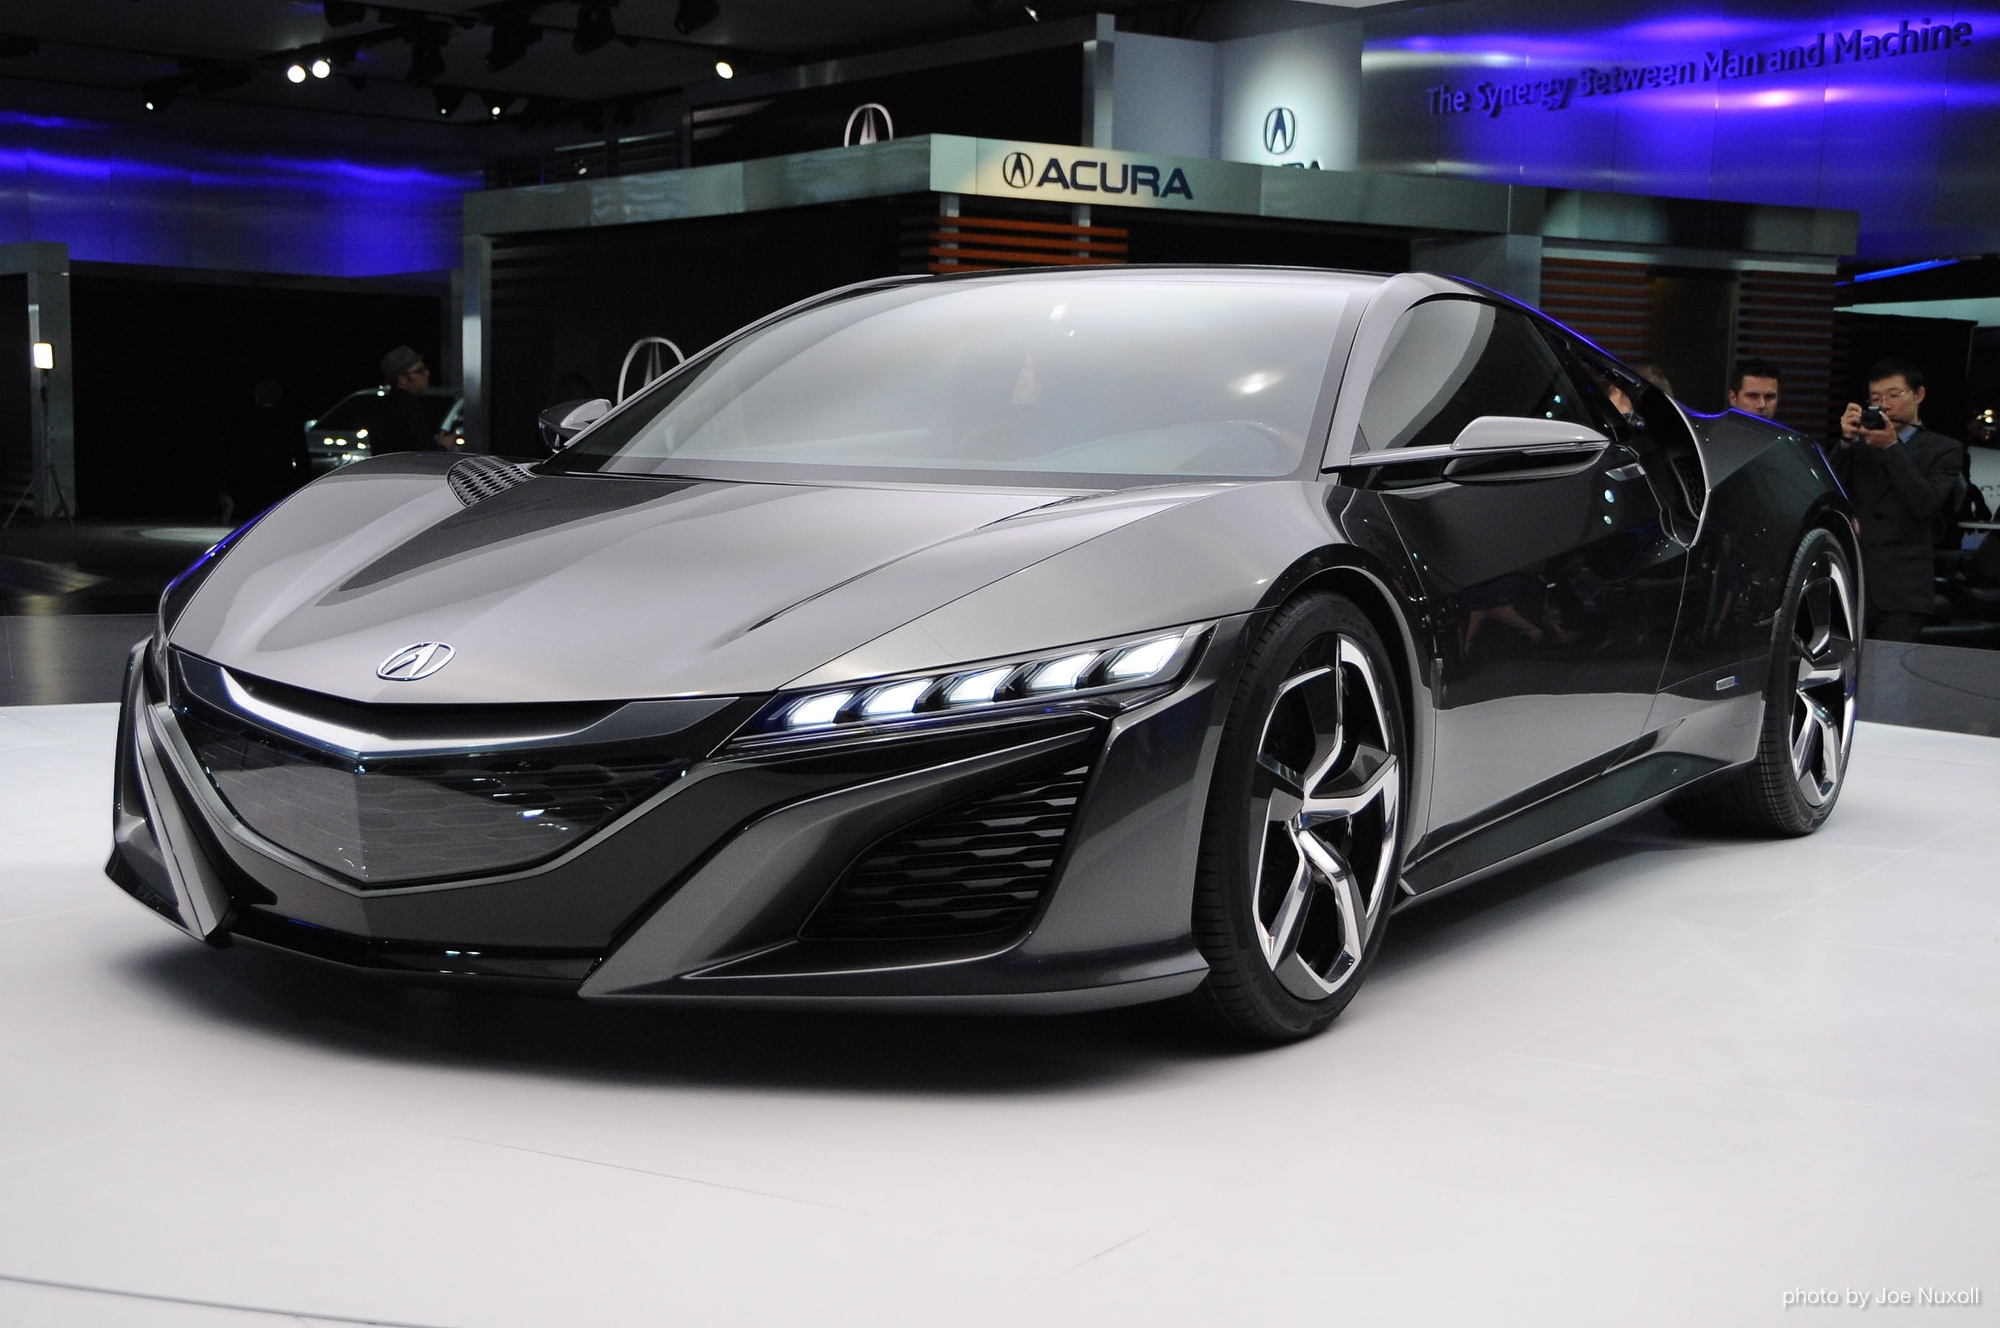 Colorado Springs Toyota >> Acura NSX Update, Domestic Brands, 2014 Cadillac XTS: Car News Headlines